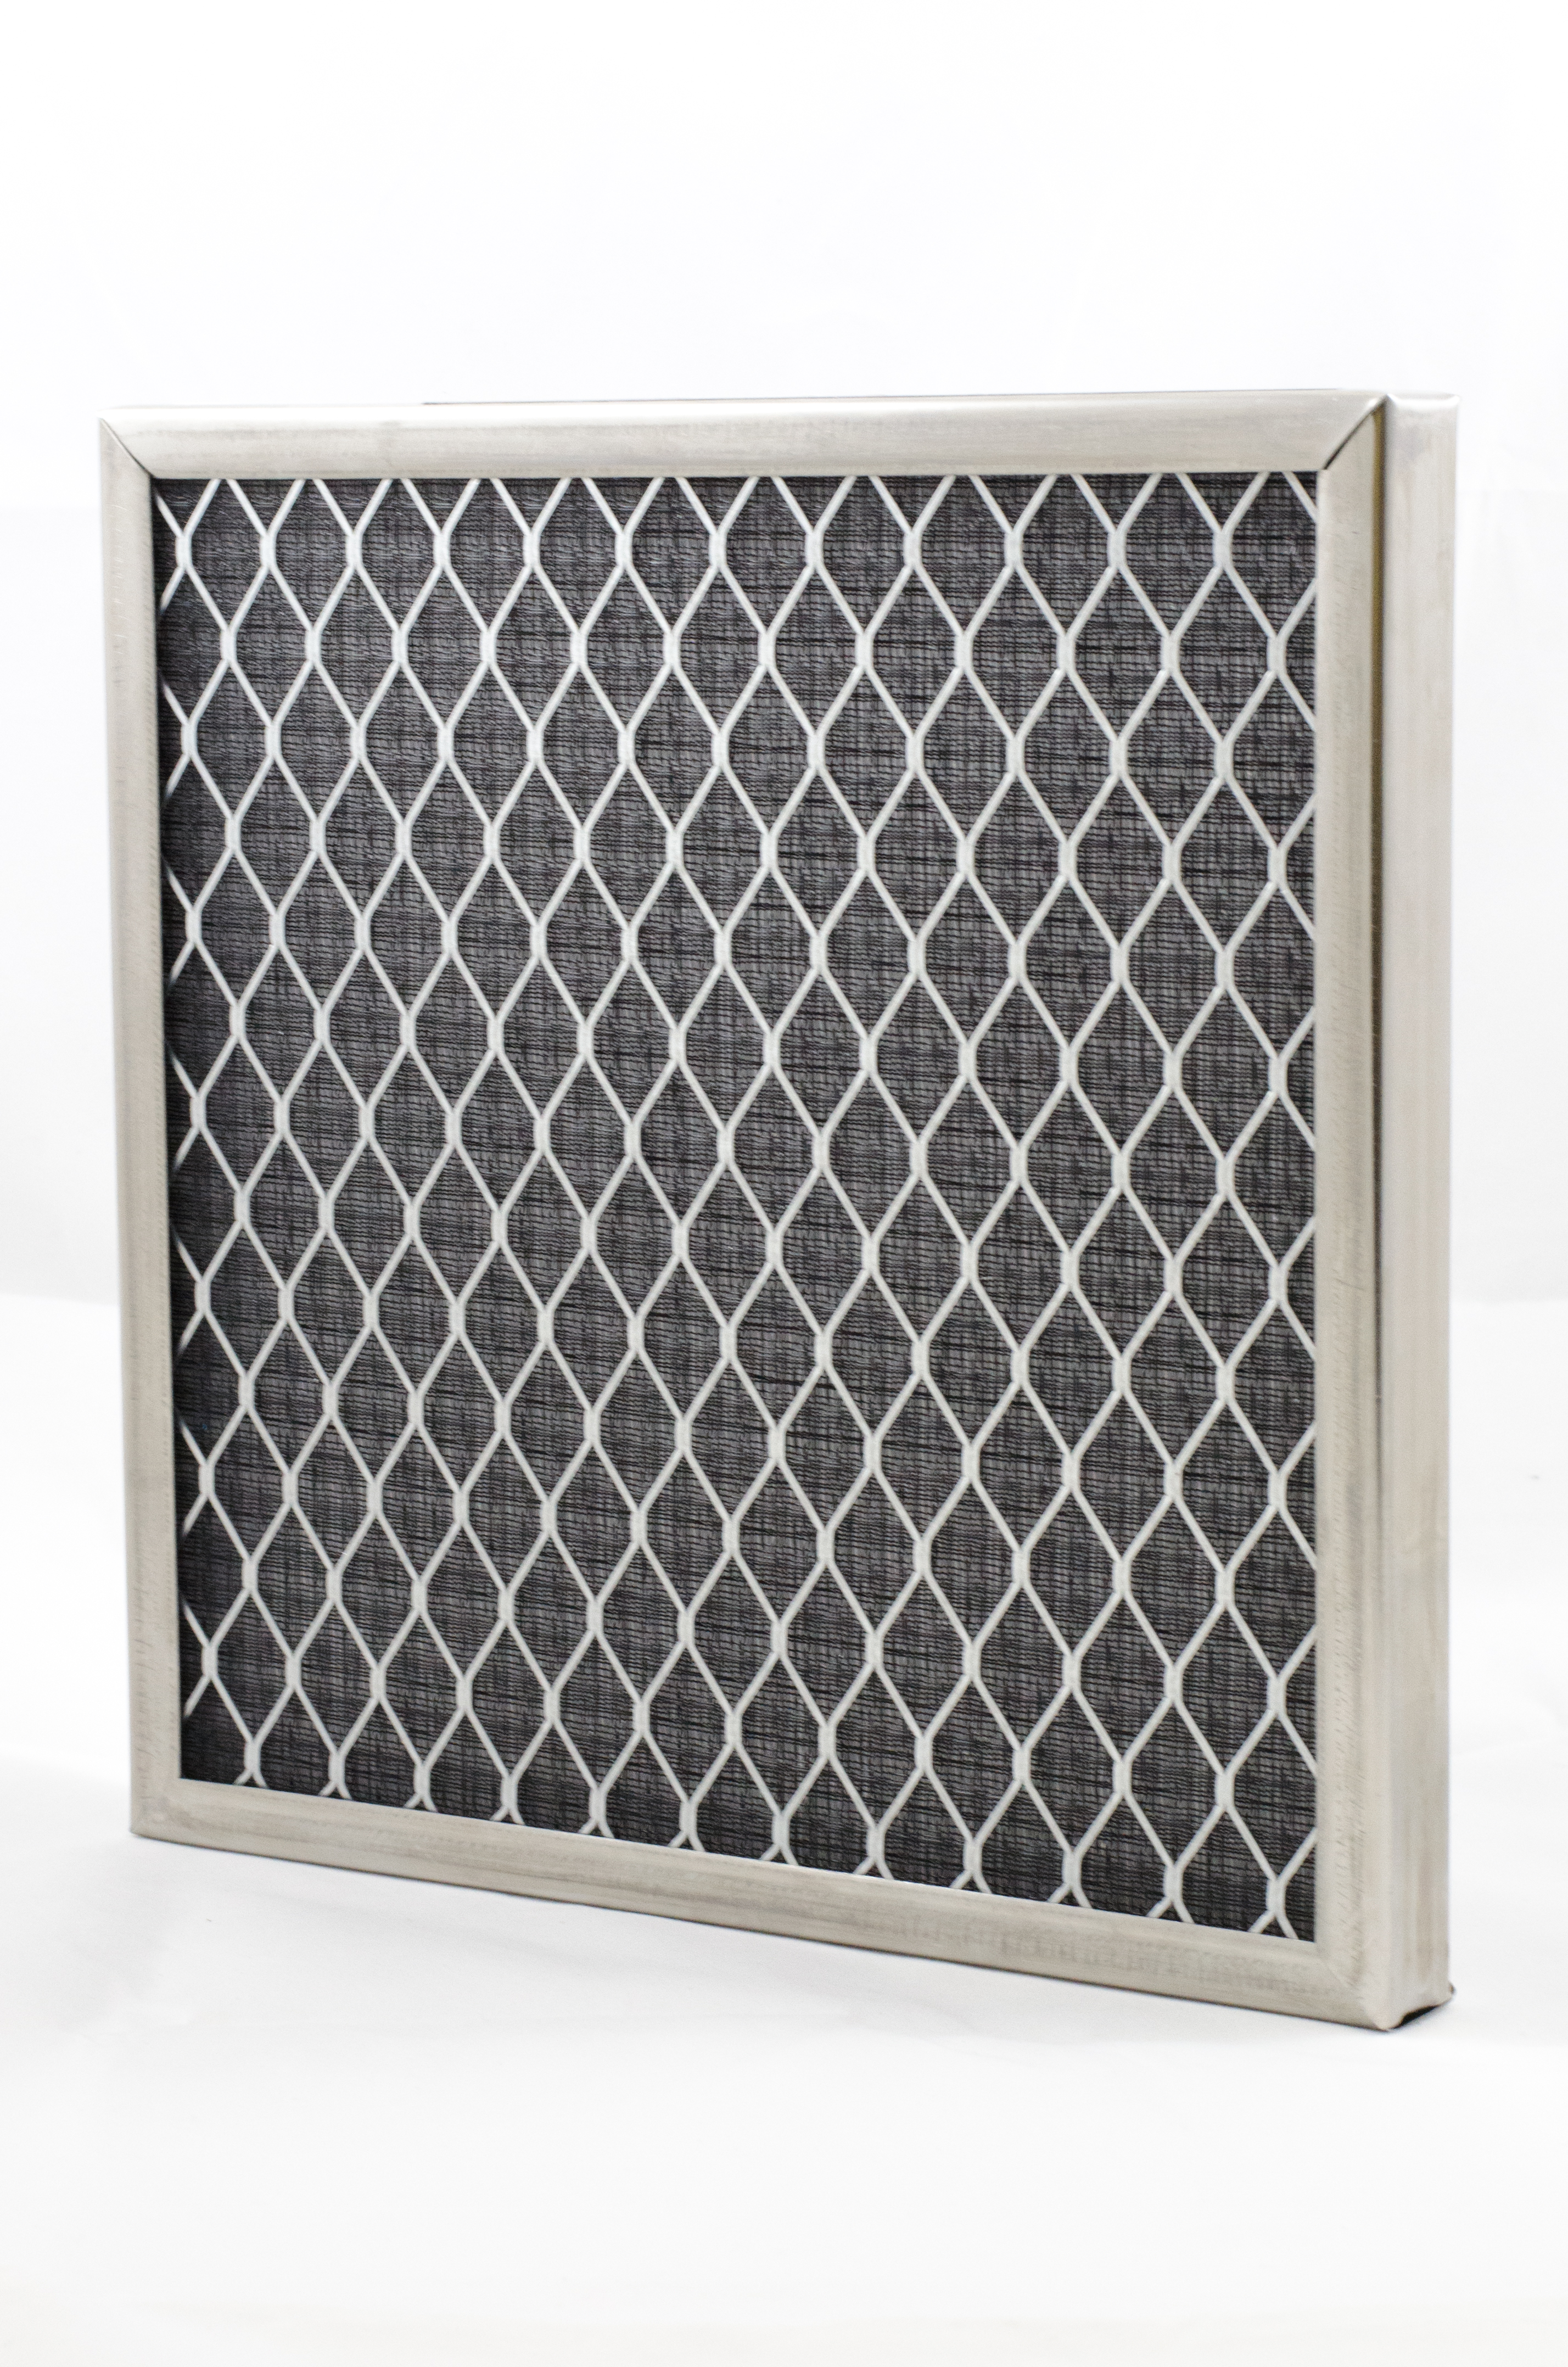 What are standard air filter sizes lifestyle plus air filters jeuxipadfo Image collections